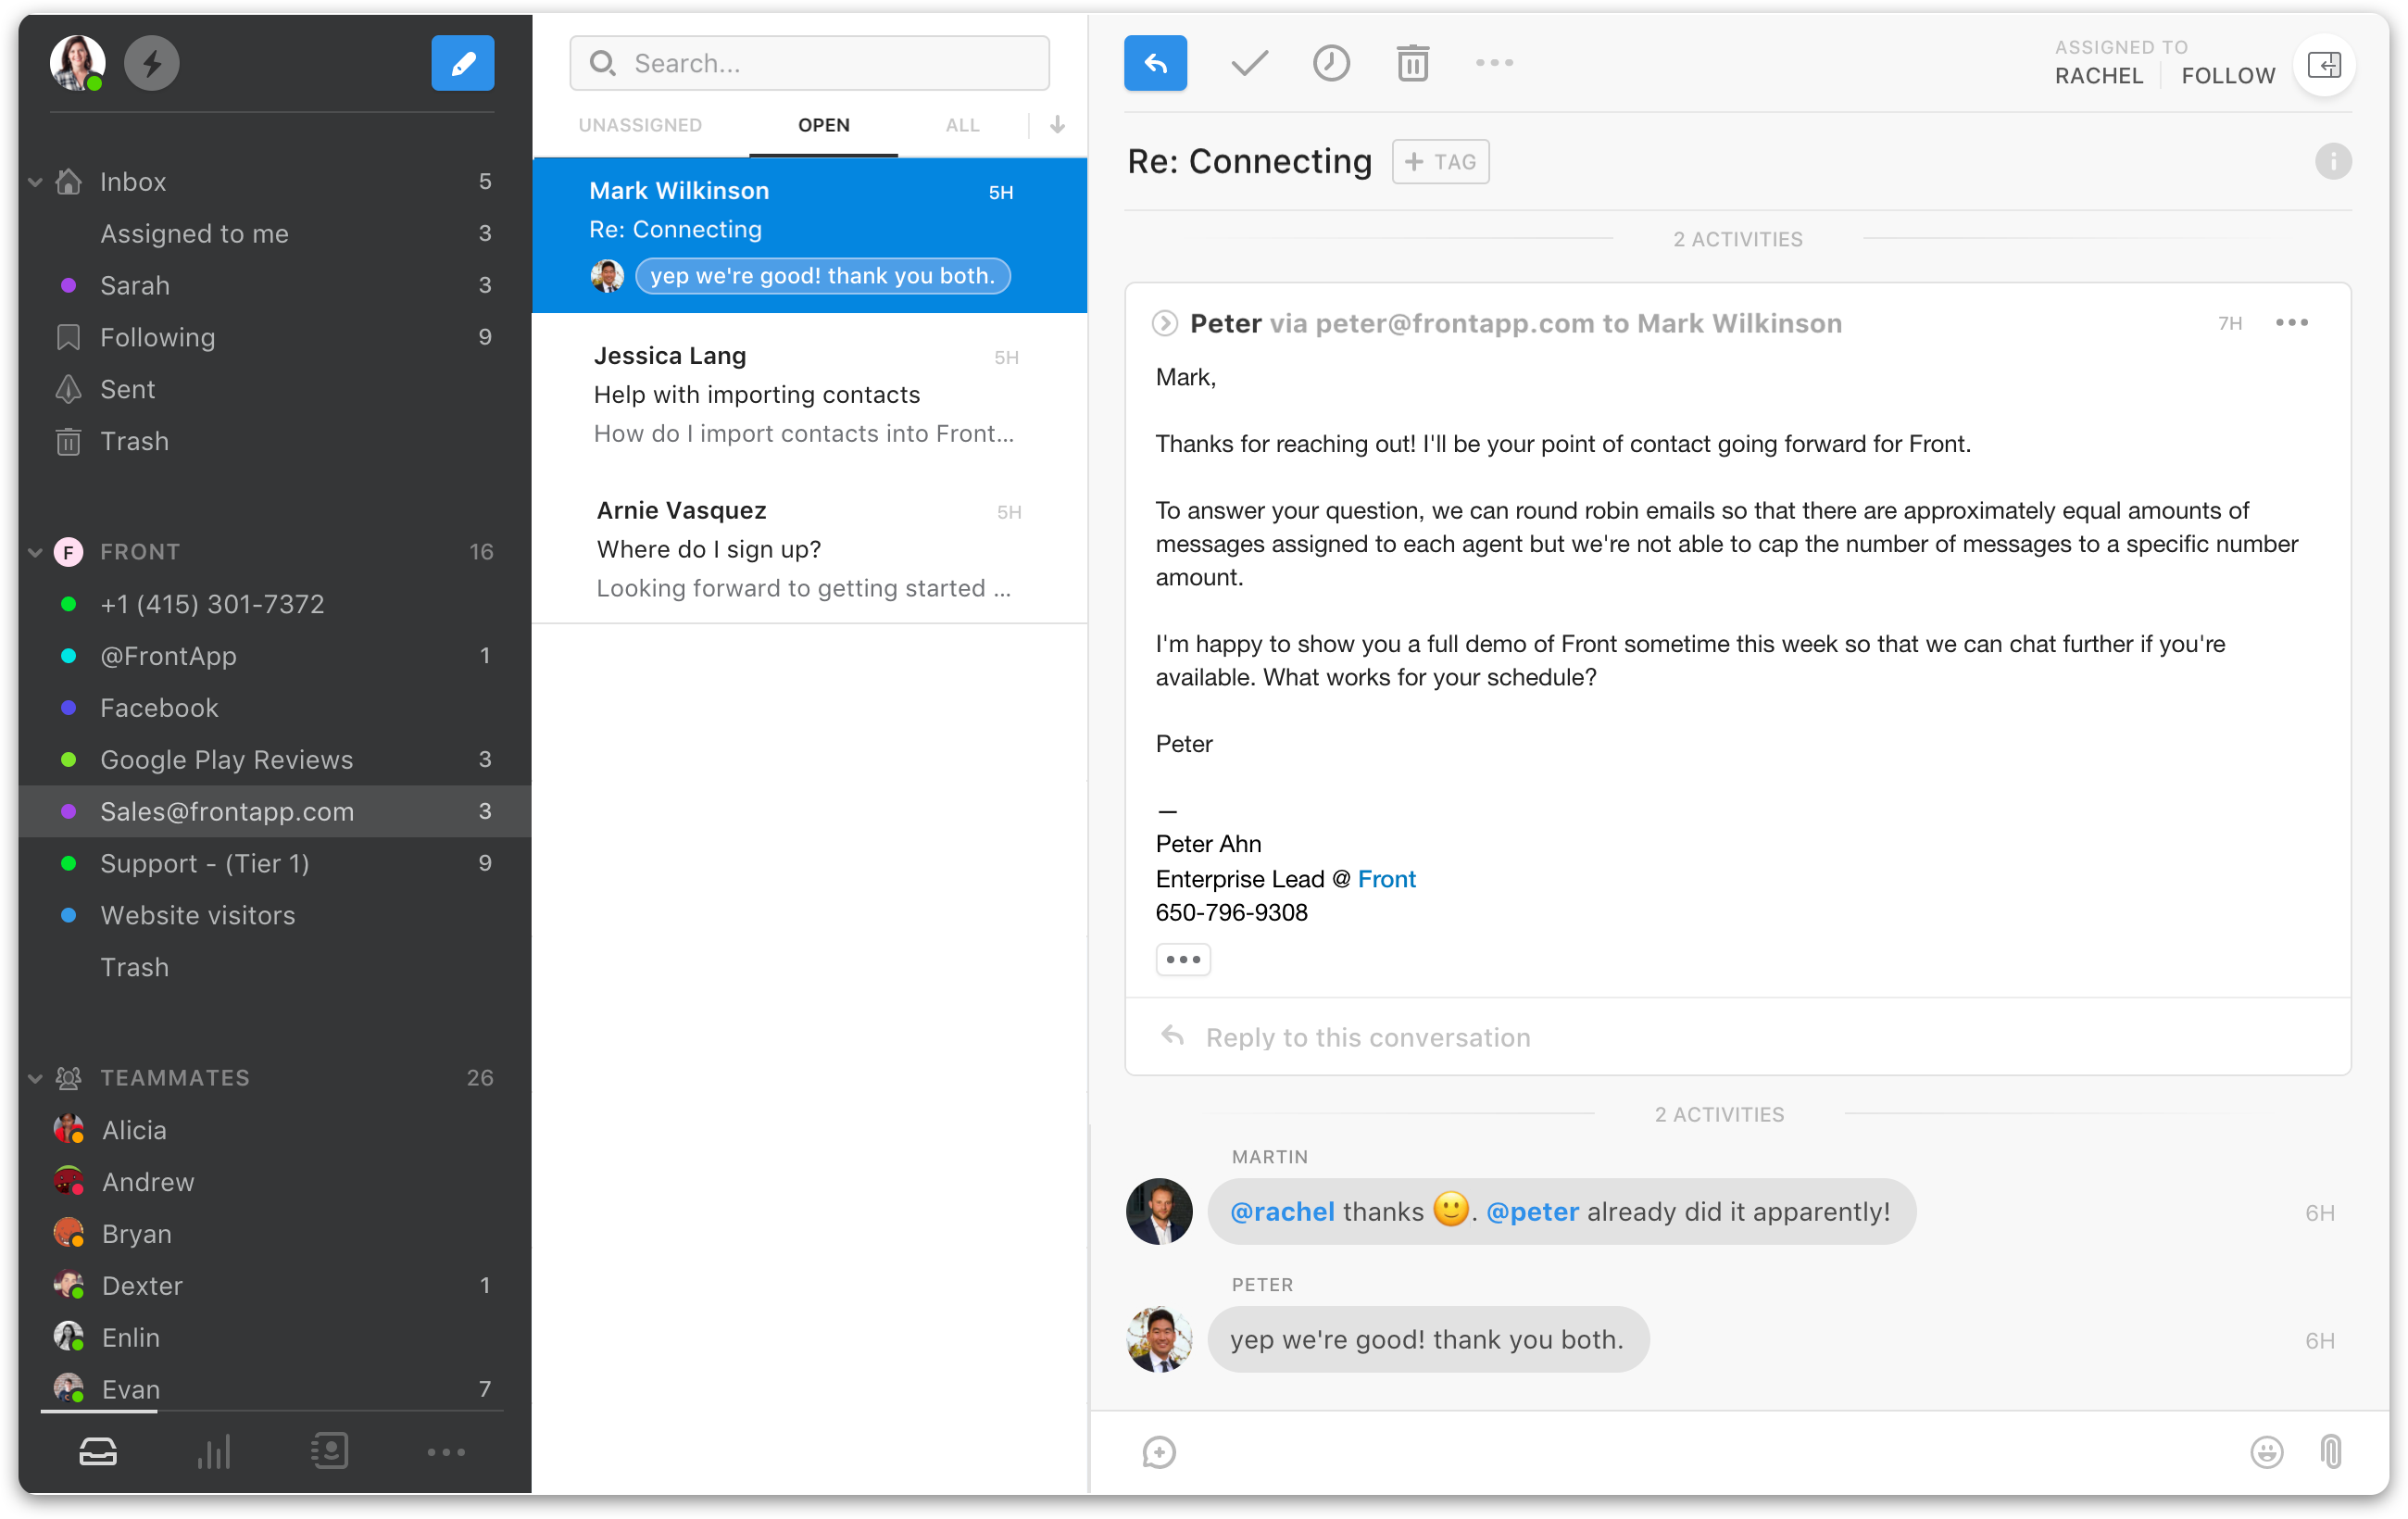 Front screenshot: Manage email, chat, social media, SMS in one place